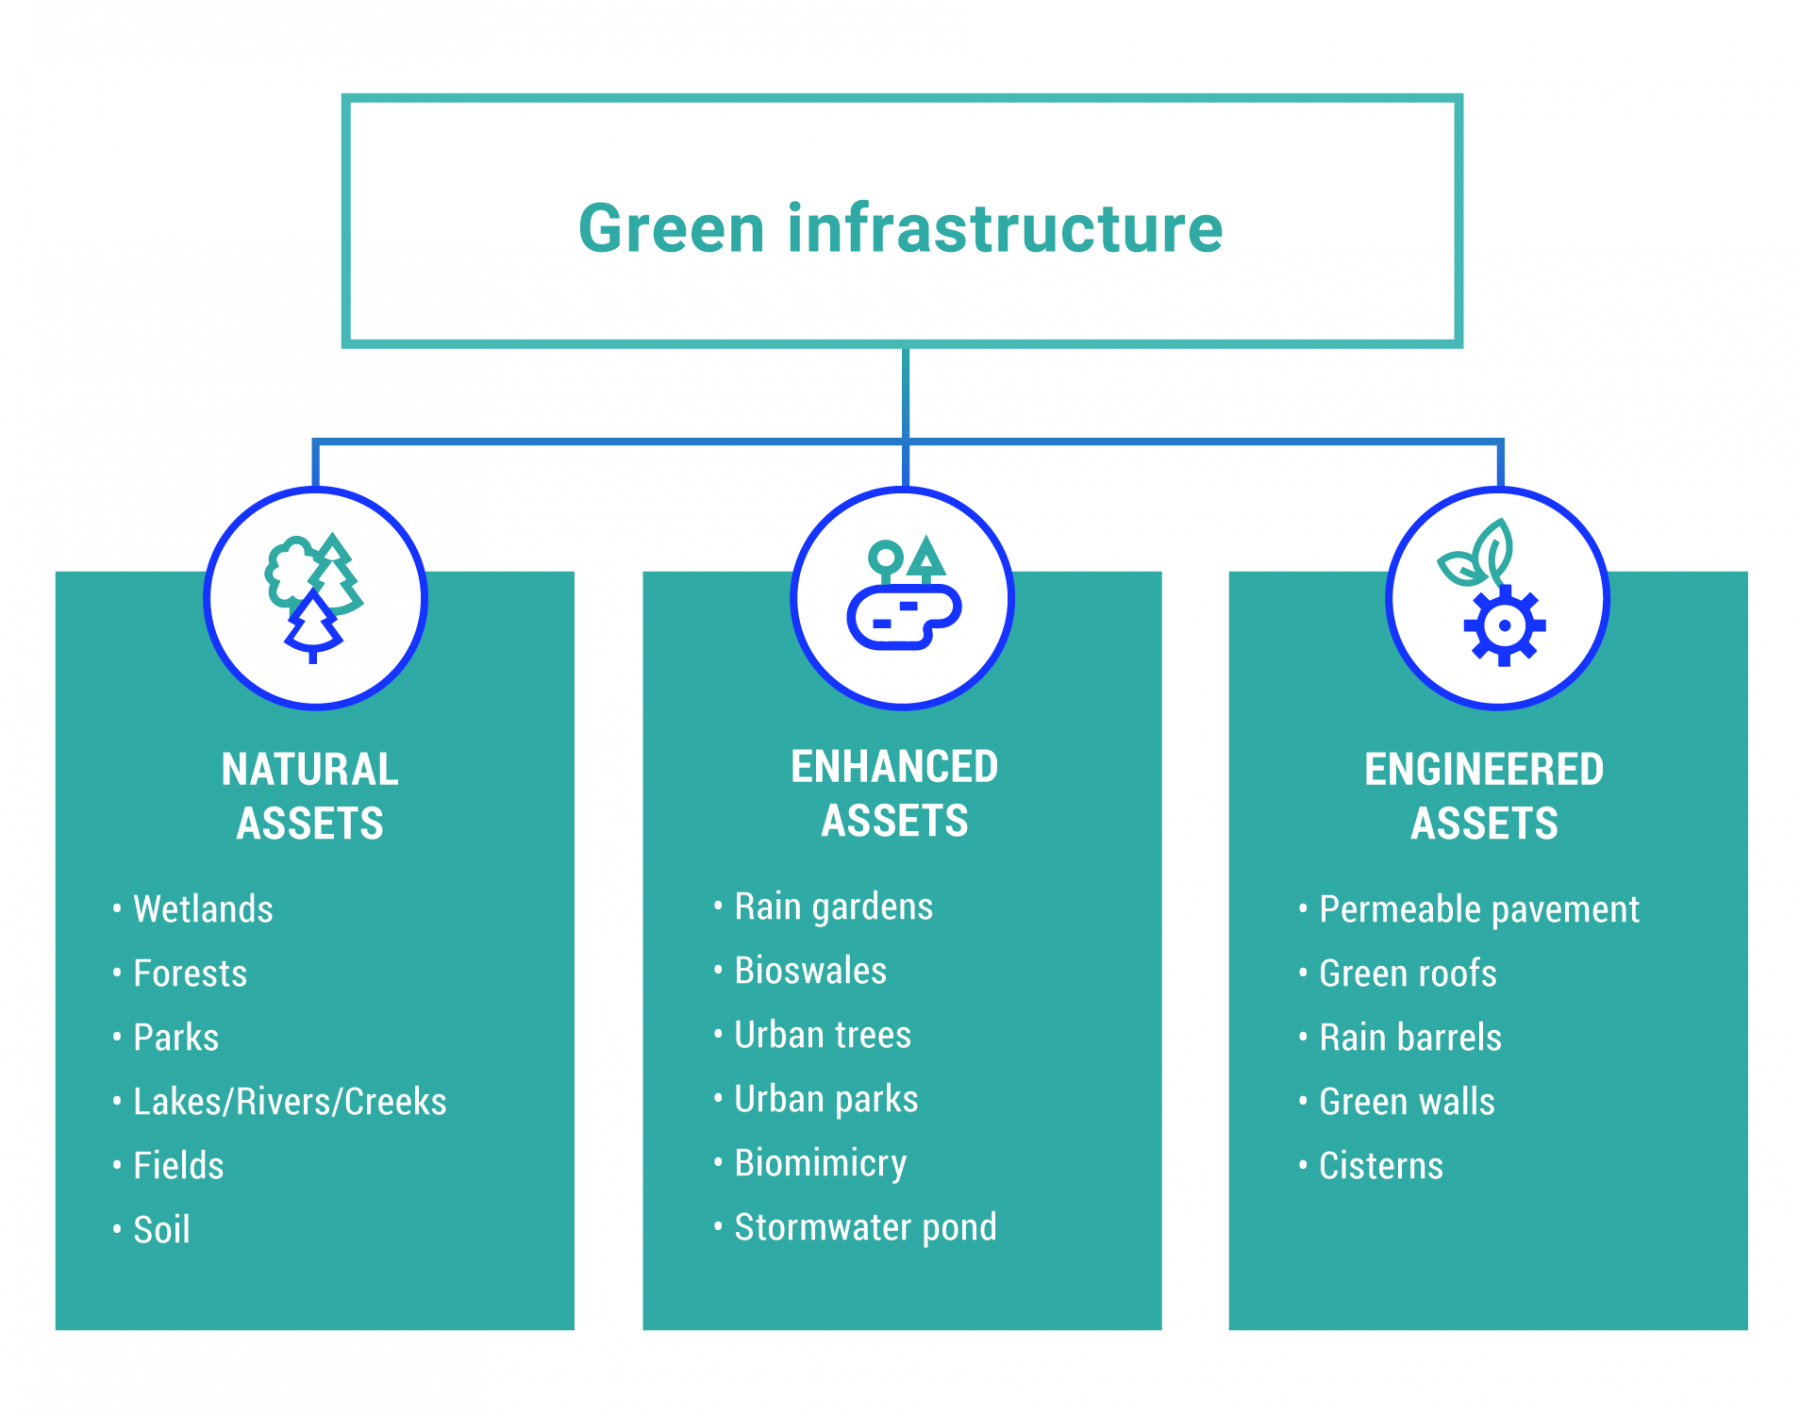 Graphical diagram showing the three categories of green infrastructure: natural assets, enhanced assets, and engineered assets. Natural assets include wetlands, forests, parks, lakes, rivers, creeks, fields and soil. Enhanced assets include rain gardens, bioswales, urban trees and parks, biomimicry and stormwater ponds. Engineered assets includes permeable pavement, green roofs, rain barrels, green walls and cisterns.